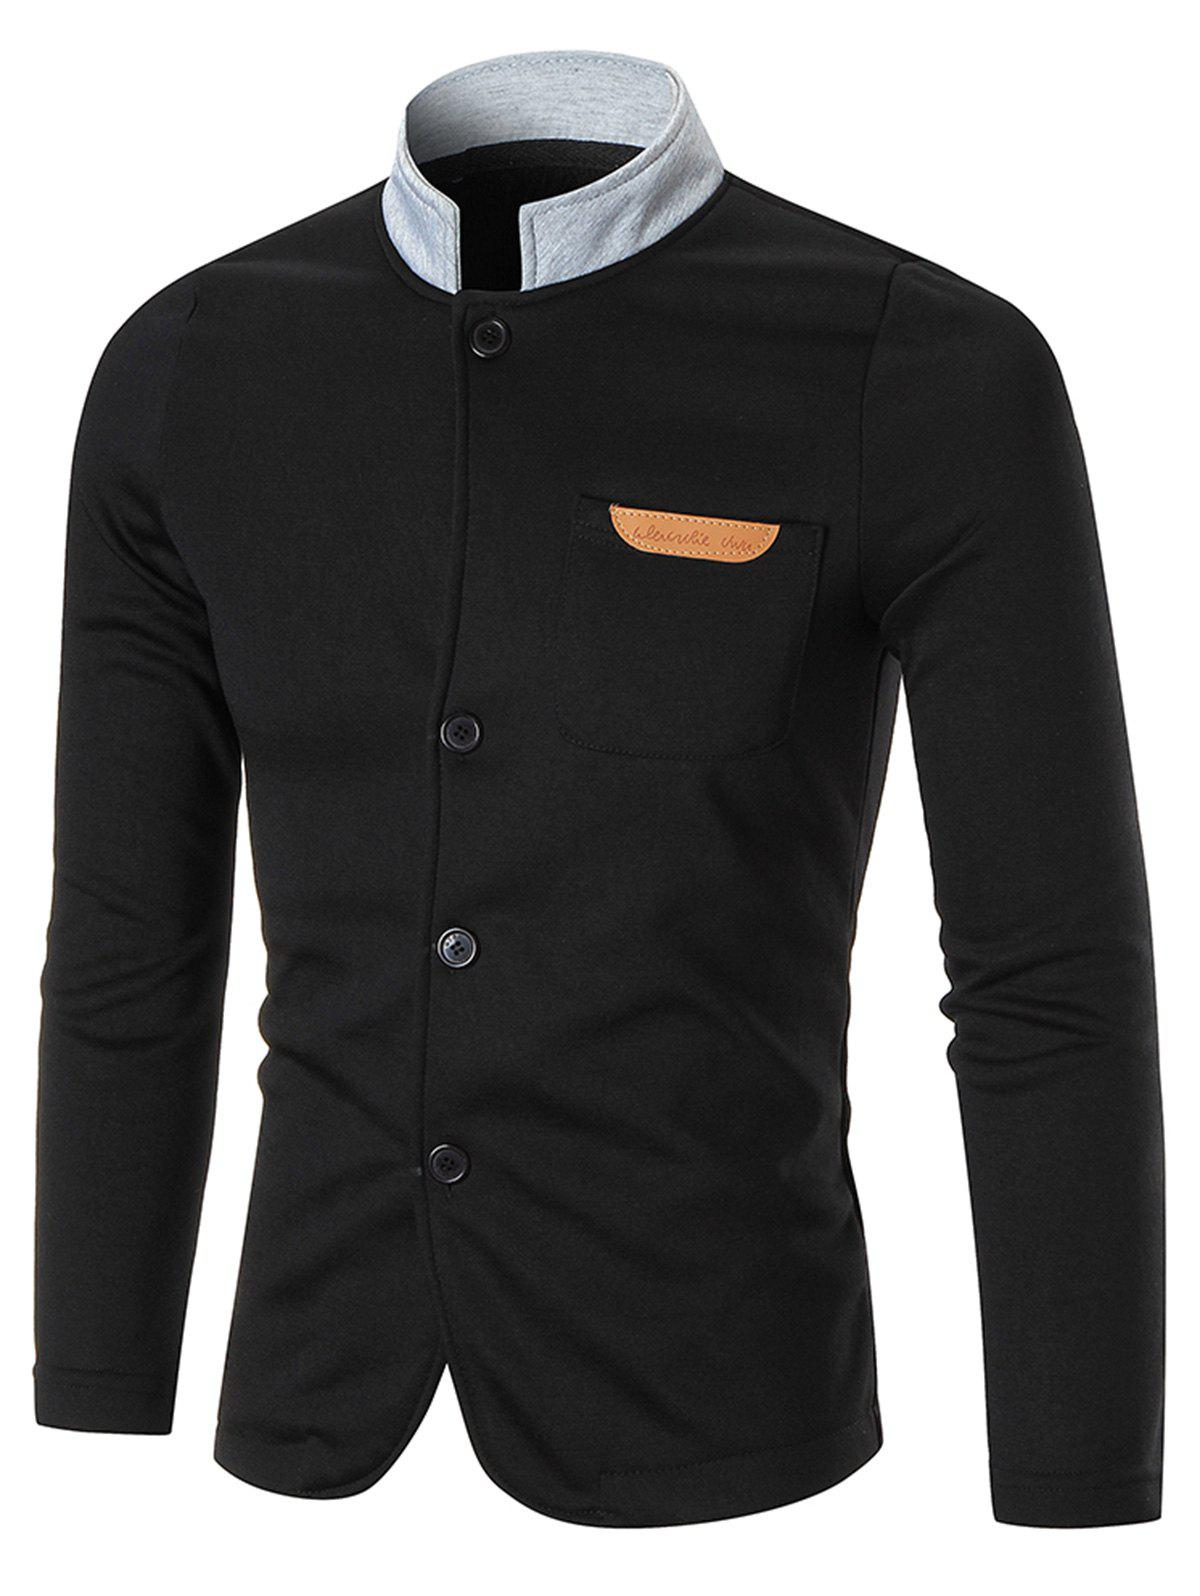 Contrast Collar Chest Pocket Button Up JacketMEN<br><br>Size: 2XL; Color: BLACK; Clothes Type: Jackets; Style: Casual,Streetwear; Material: Cotton,Polyester; Collar: Stand Collar; Shirt Length: Regular; Sleeve Length: Long Sleeves; Season: Fall,Winter; Closure Type: Single Breasted; Occasion: Casual ,Daily Use,Going Out; Weight: 0.5100kg; Package Contents: 1 x Jacket;